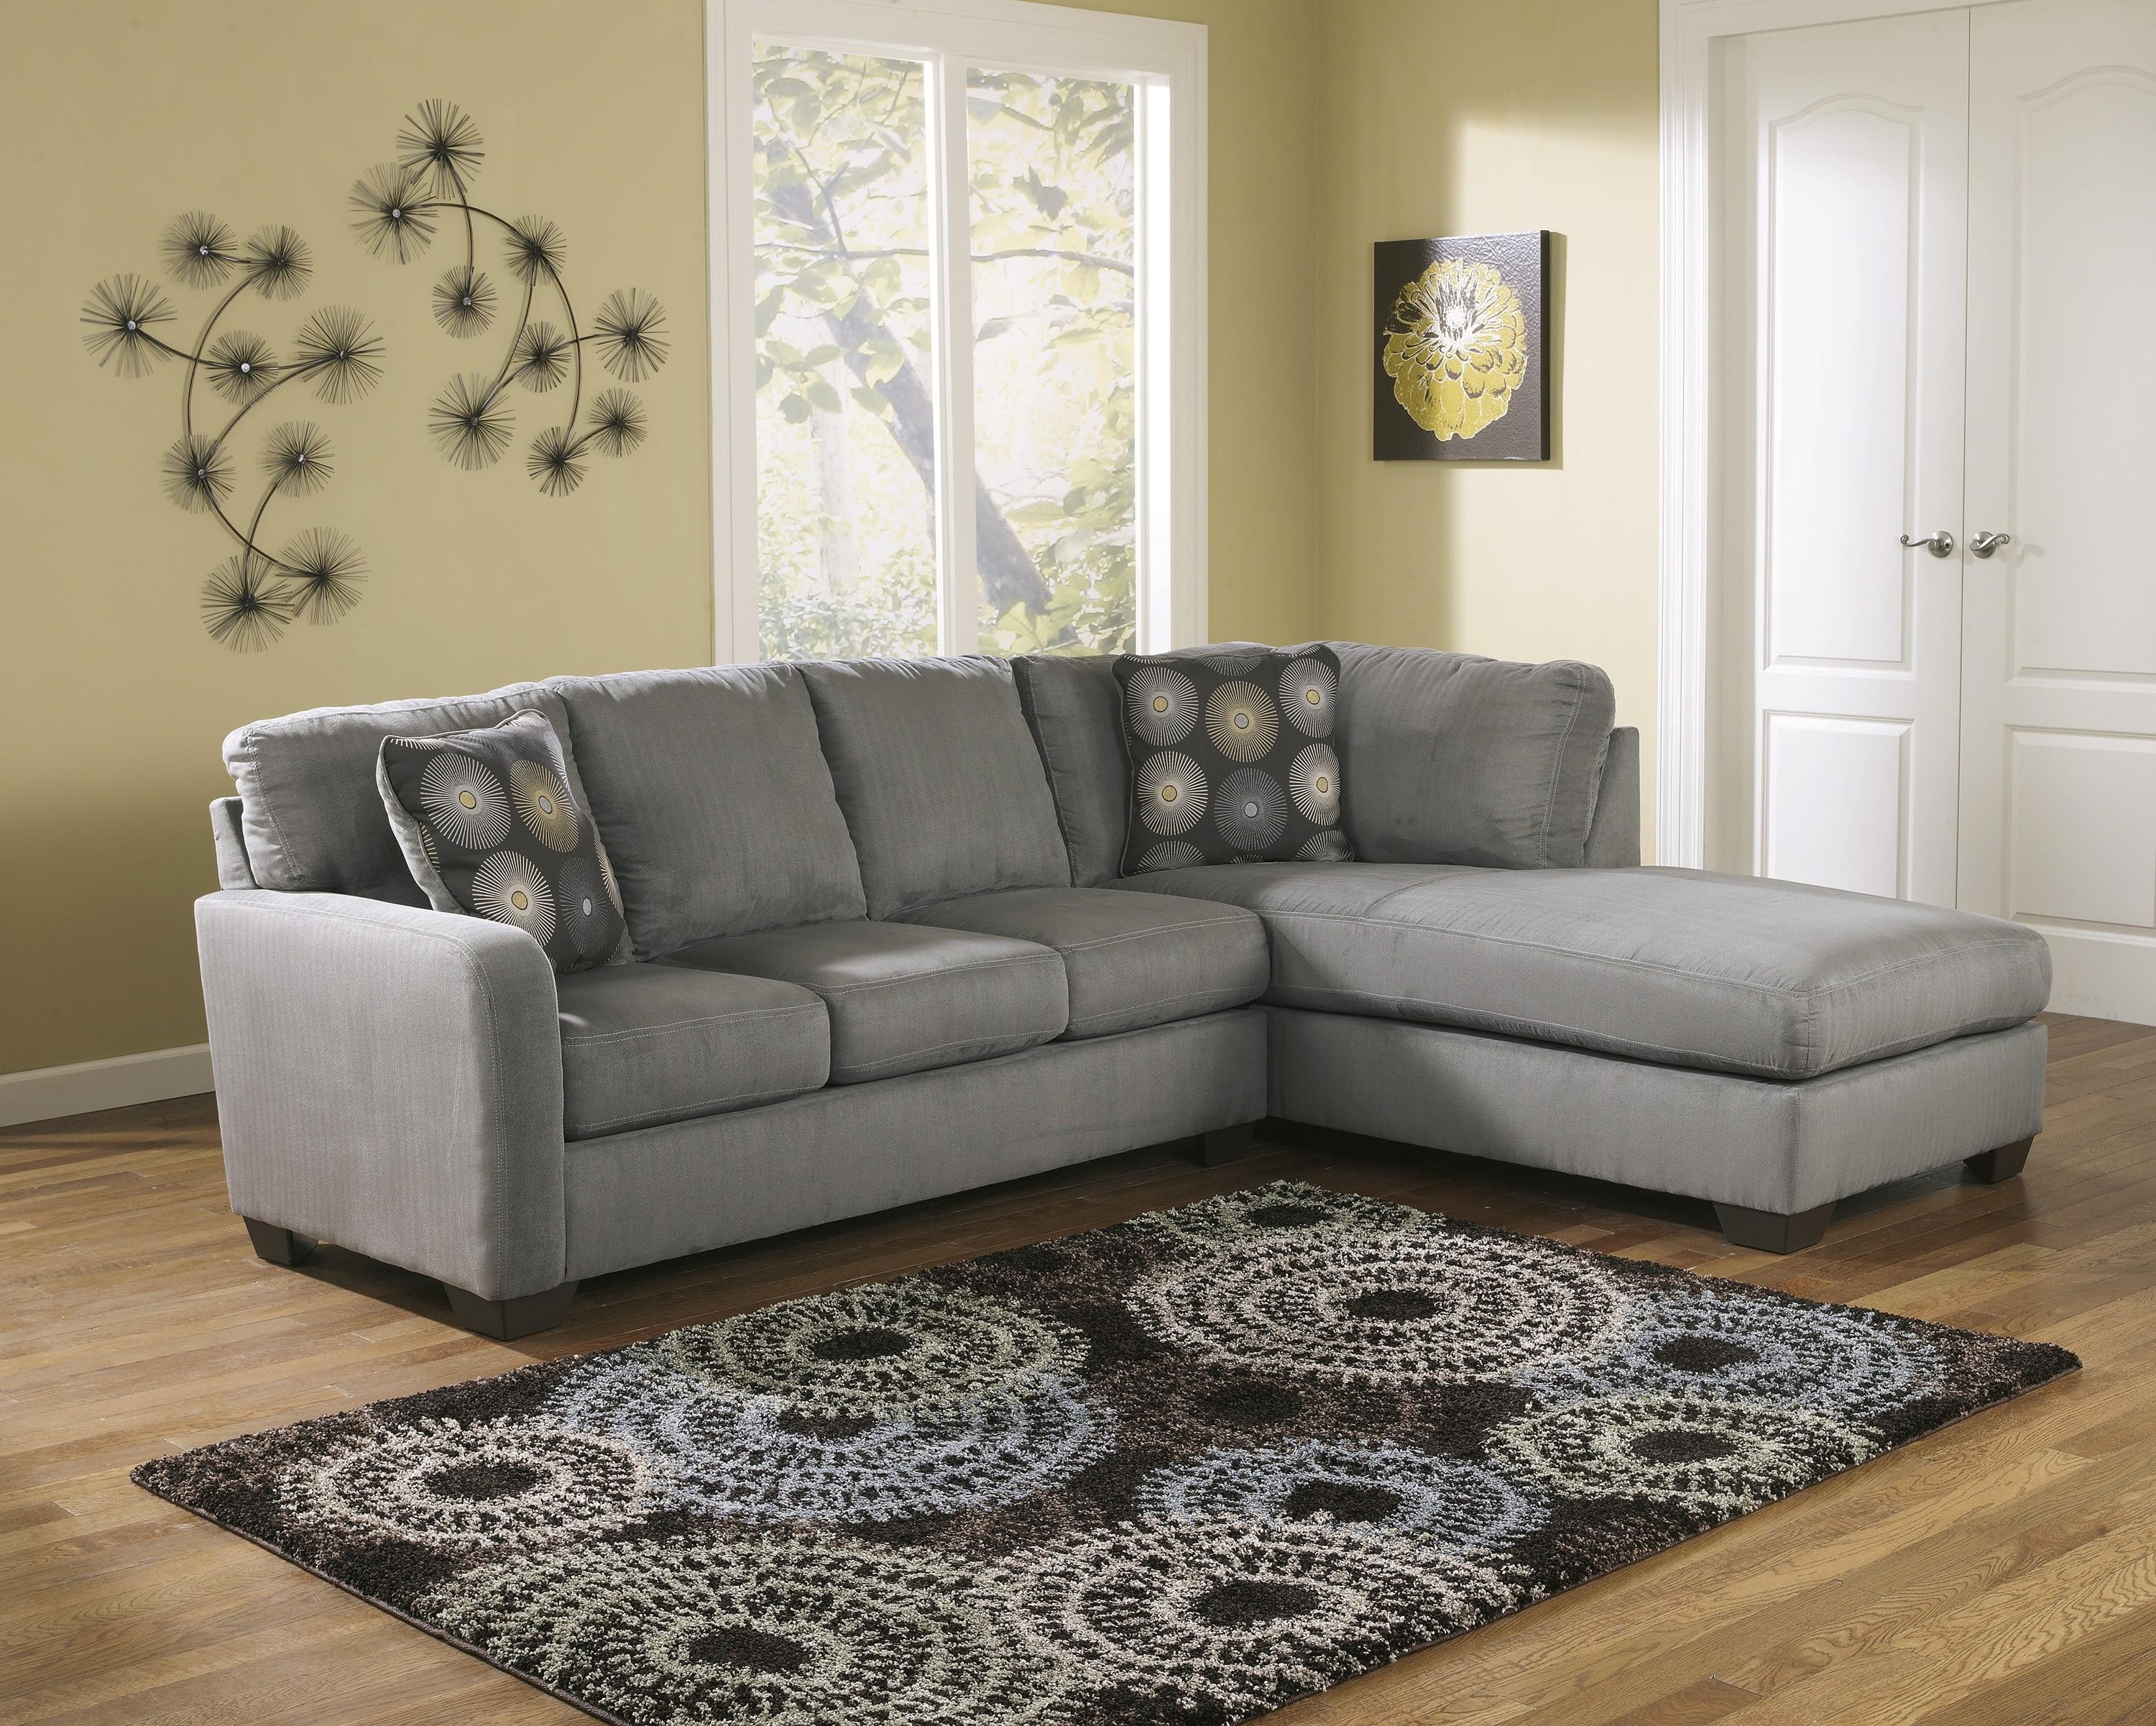 charcoal gray sofa ideas camouflage covers grey sofas explore 19 of 20 photos